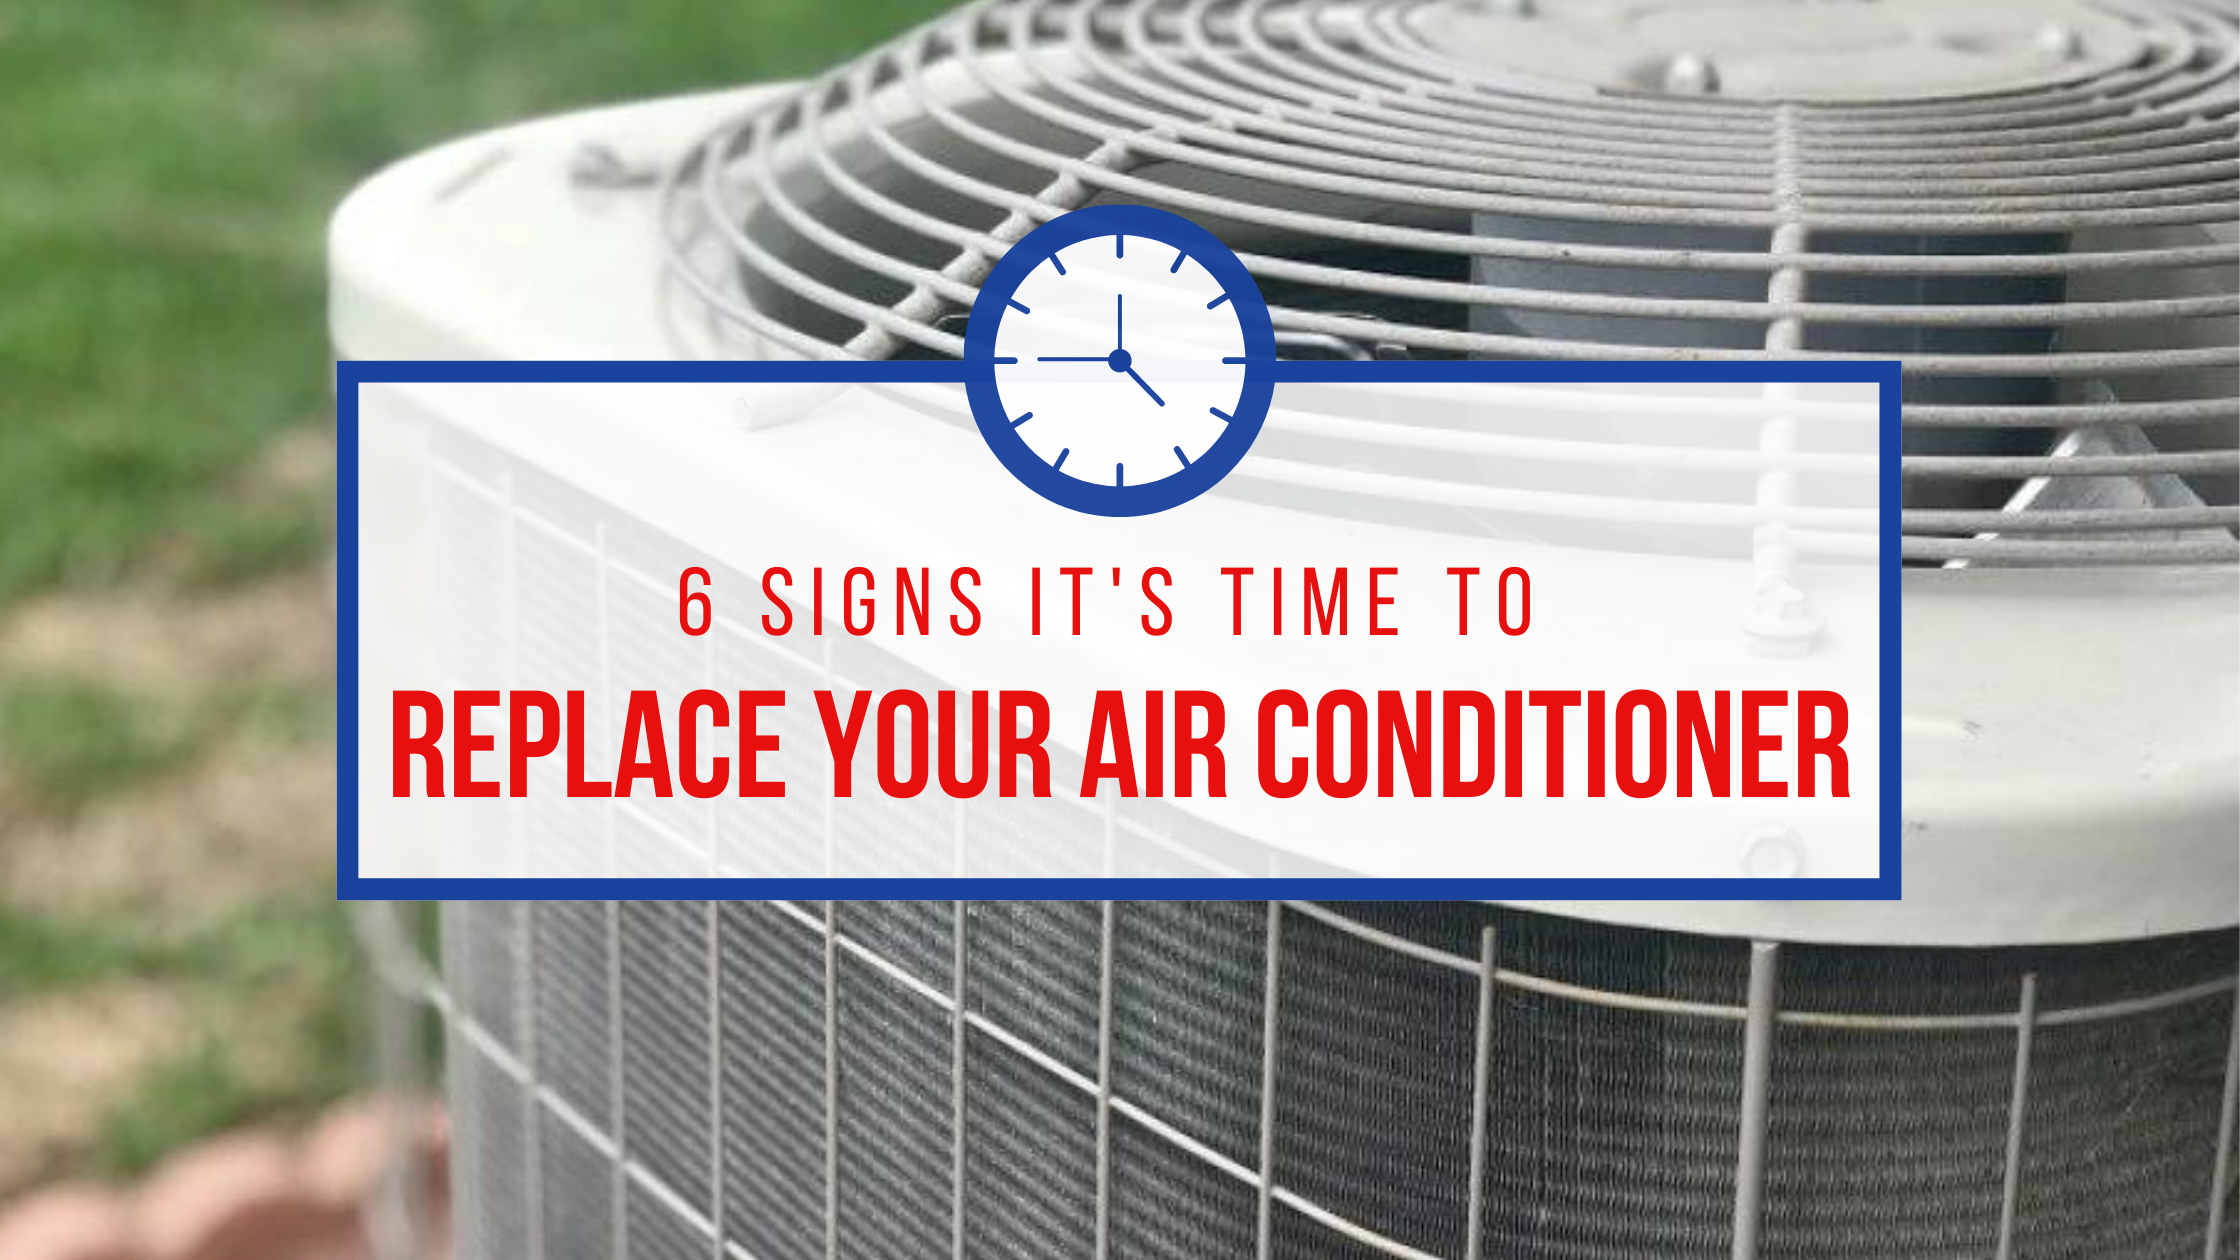 replace air conditioner, when to replace air conditioner, how do I know if it's time to replace air conditioner, AC unit lifespan, HVAC system lifespan